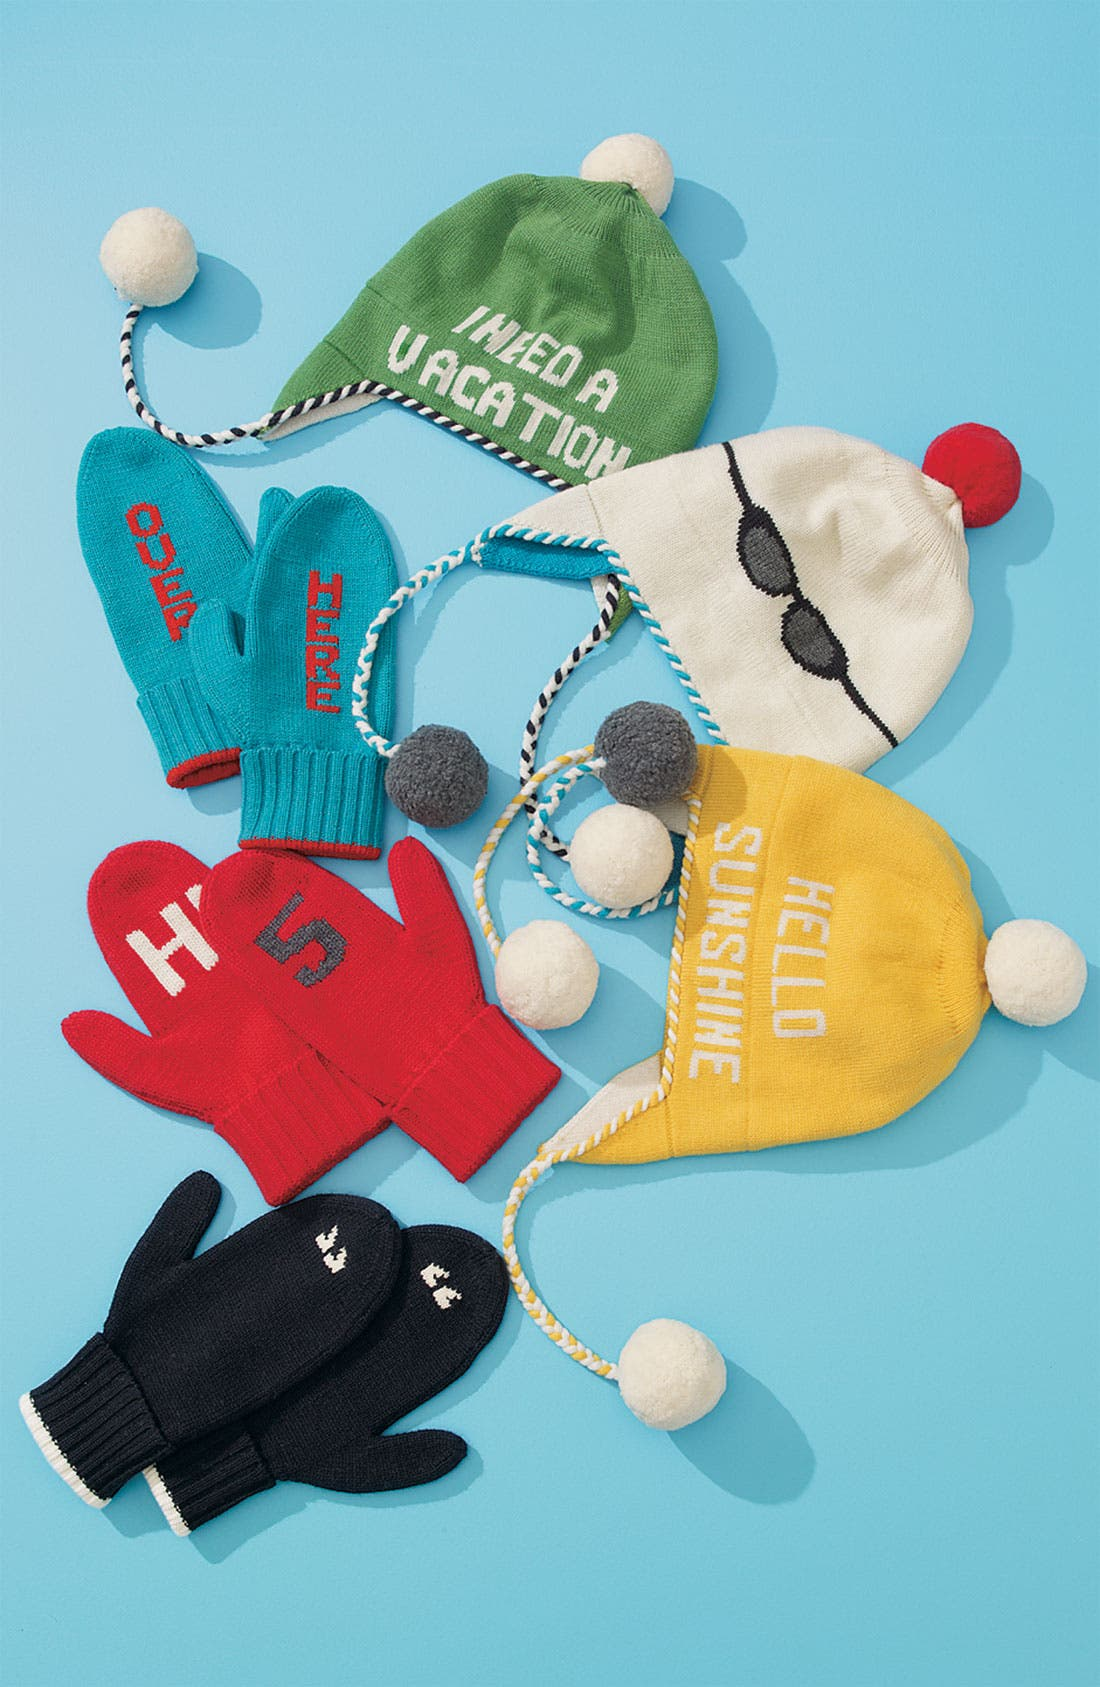 KATE SPADE NEW YORK,                             'hi 5' mittens,                             Alternate thumbnail 2, color,                             017